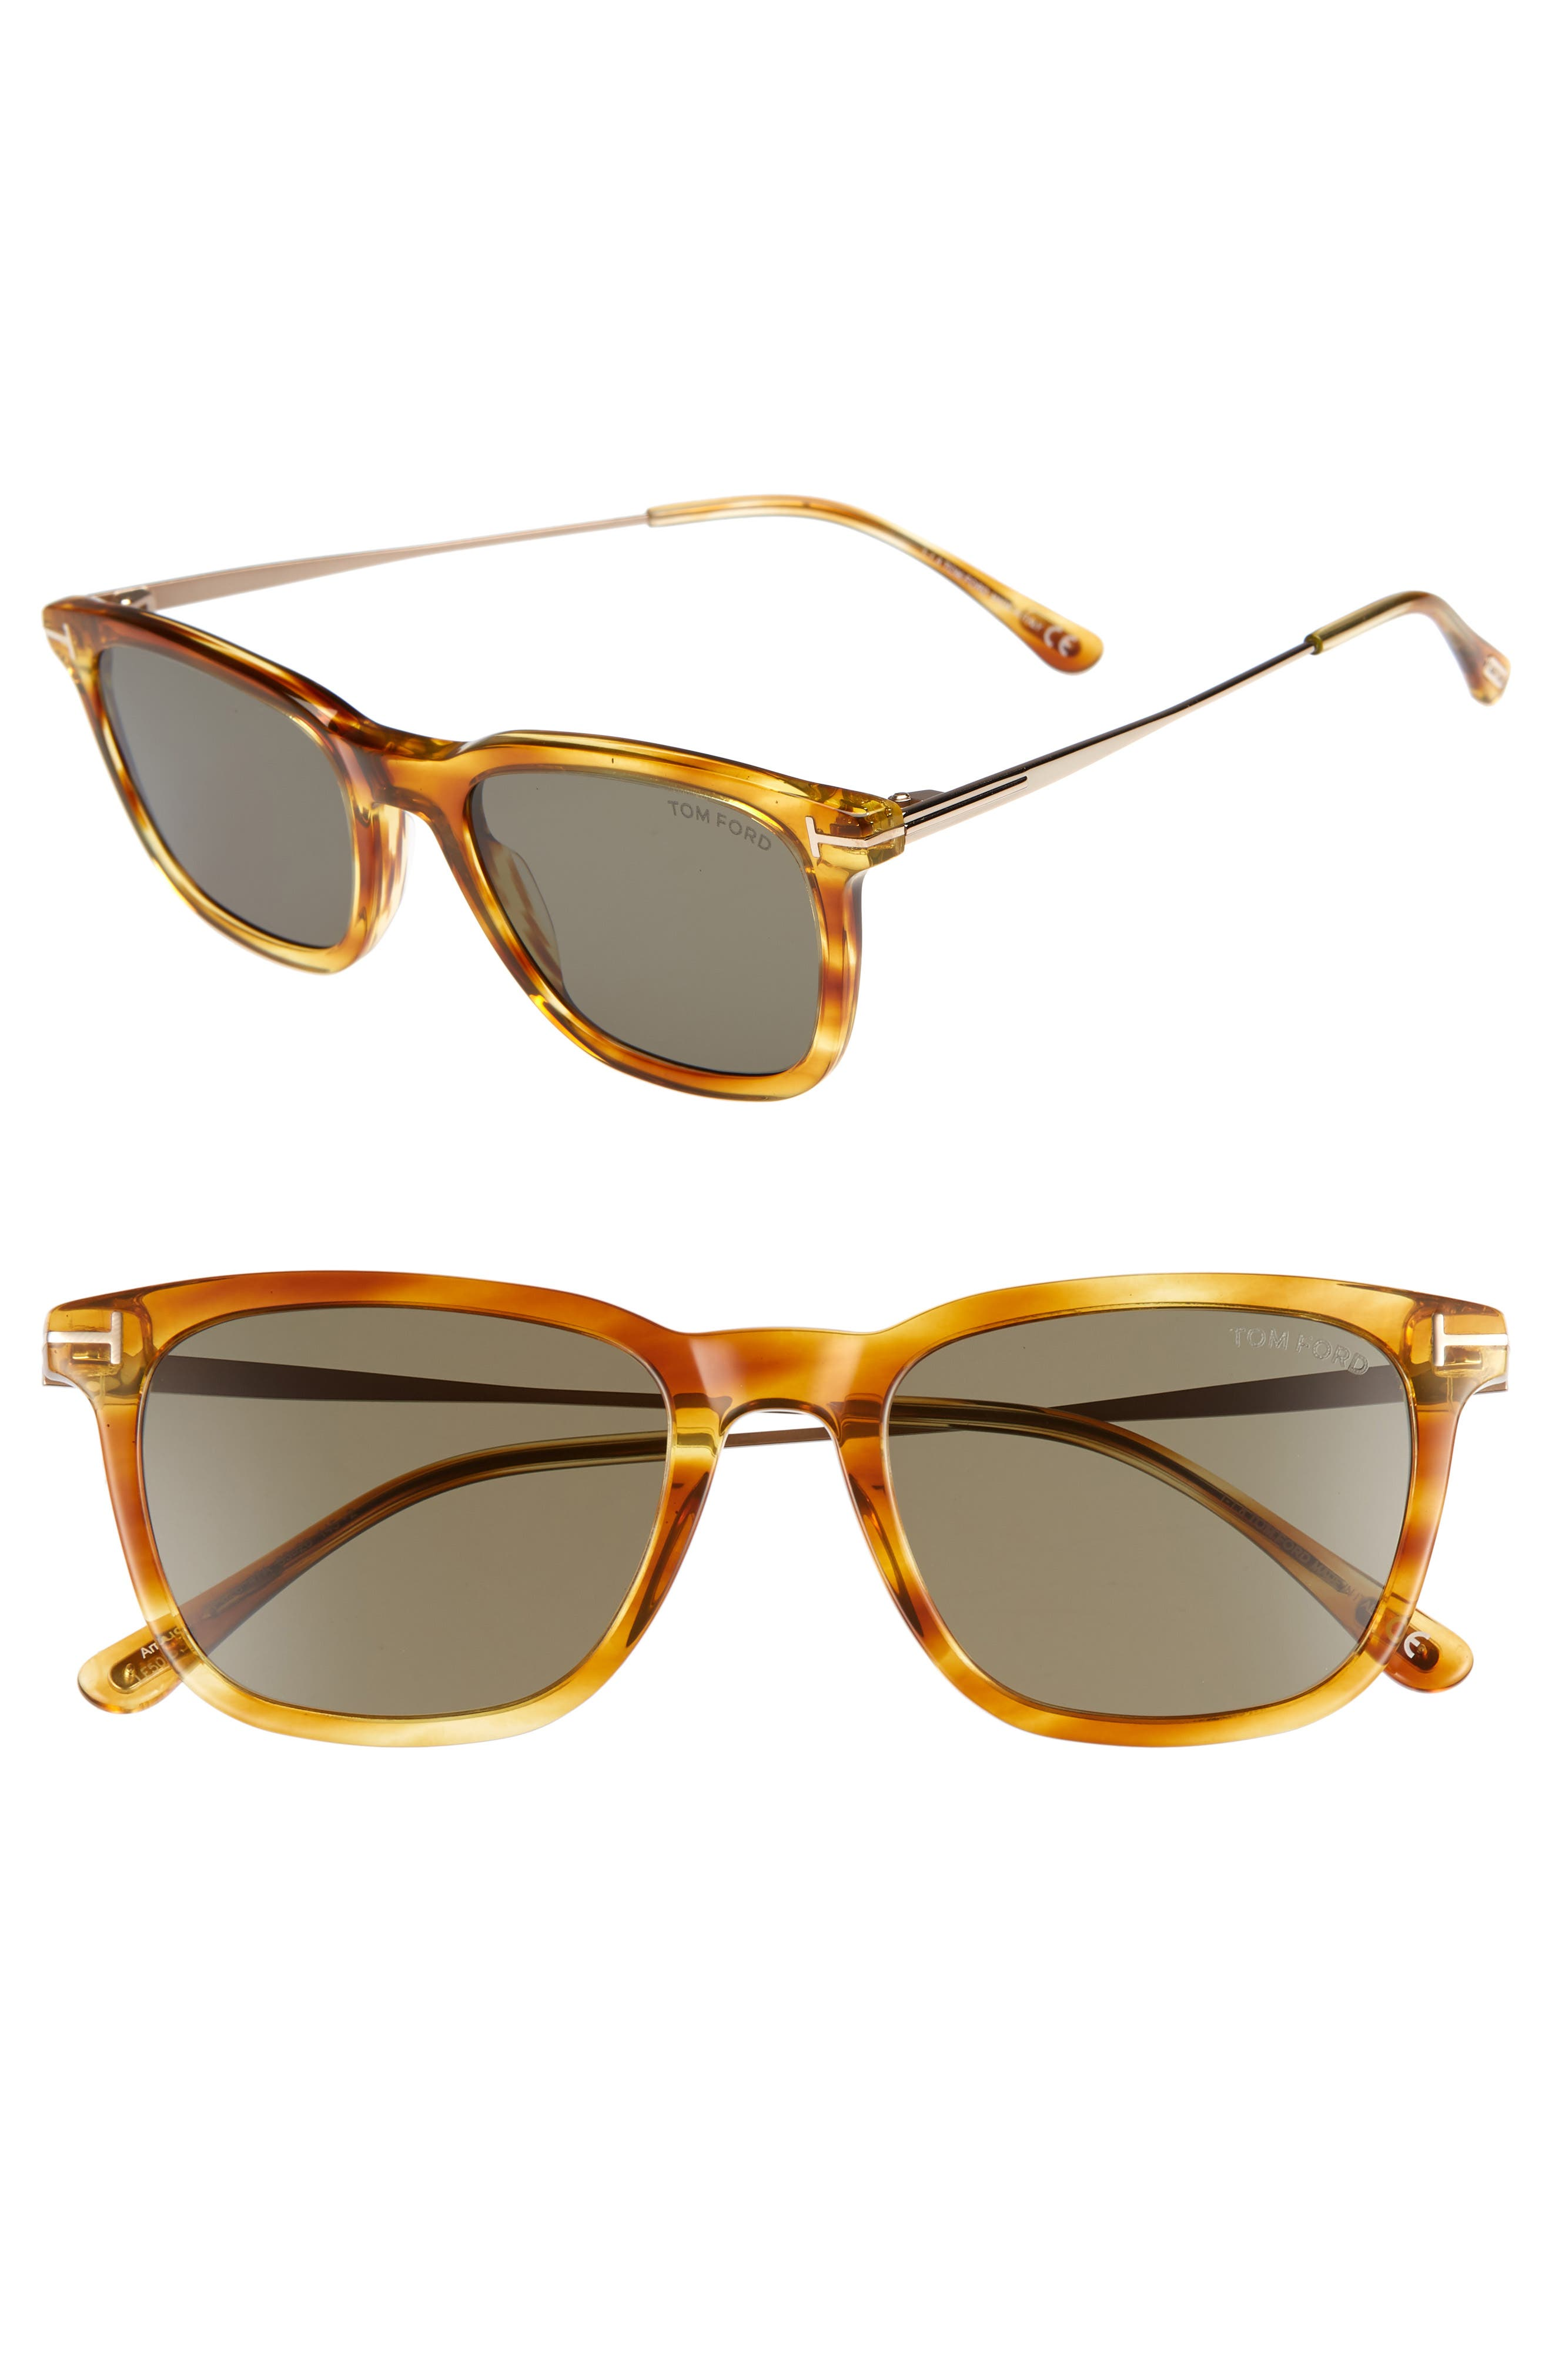 Tom Ford 5m Rectangle Sunglasses - Light Brown/ Smoke